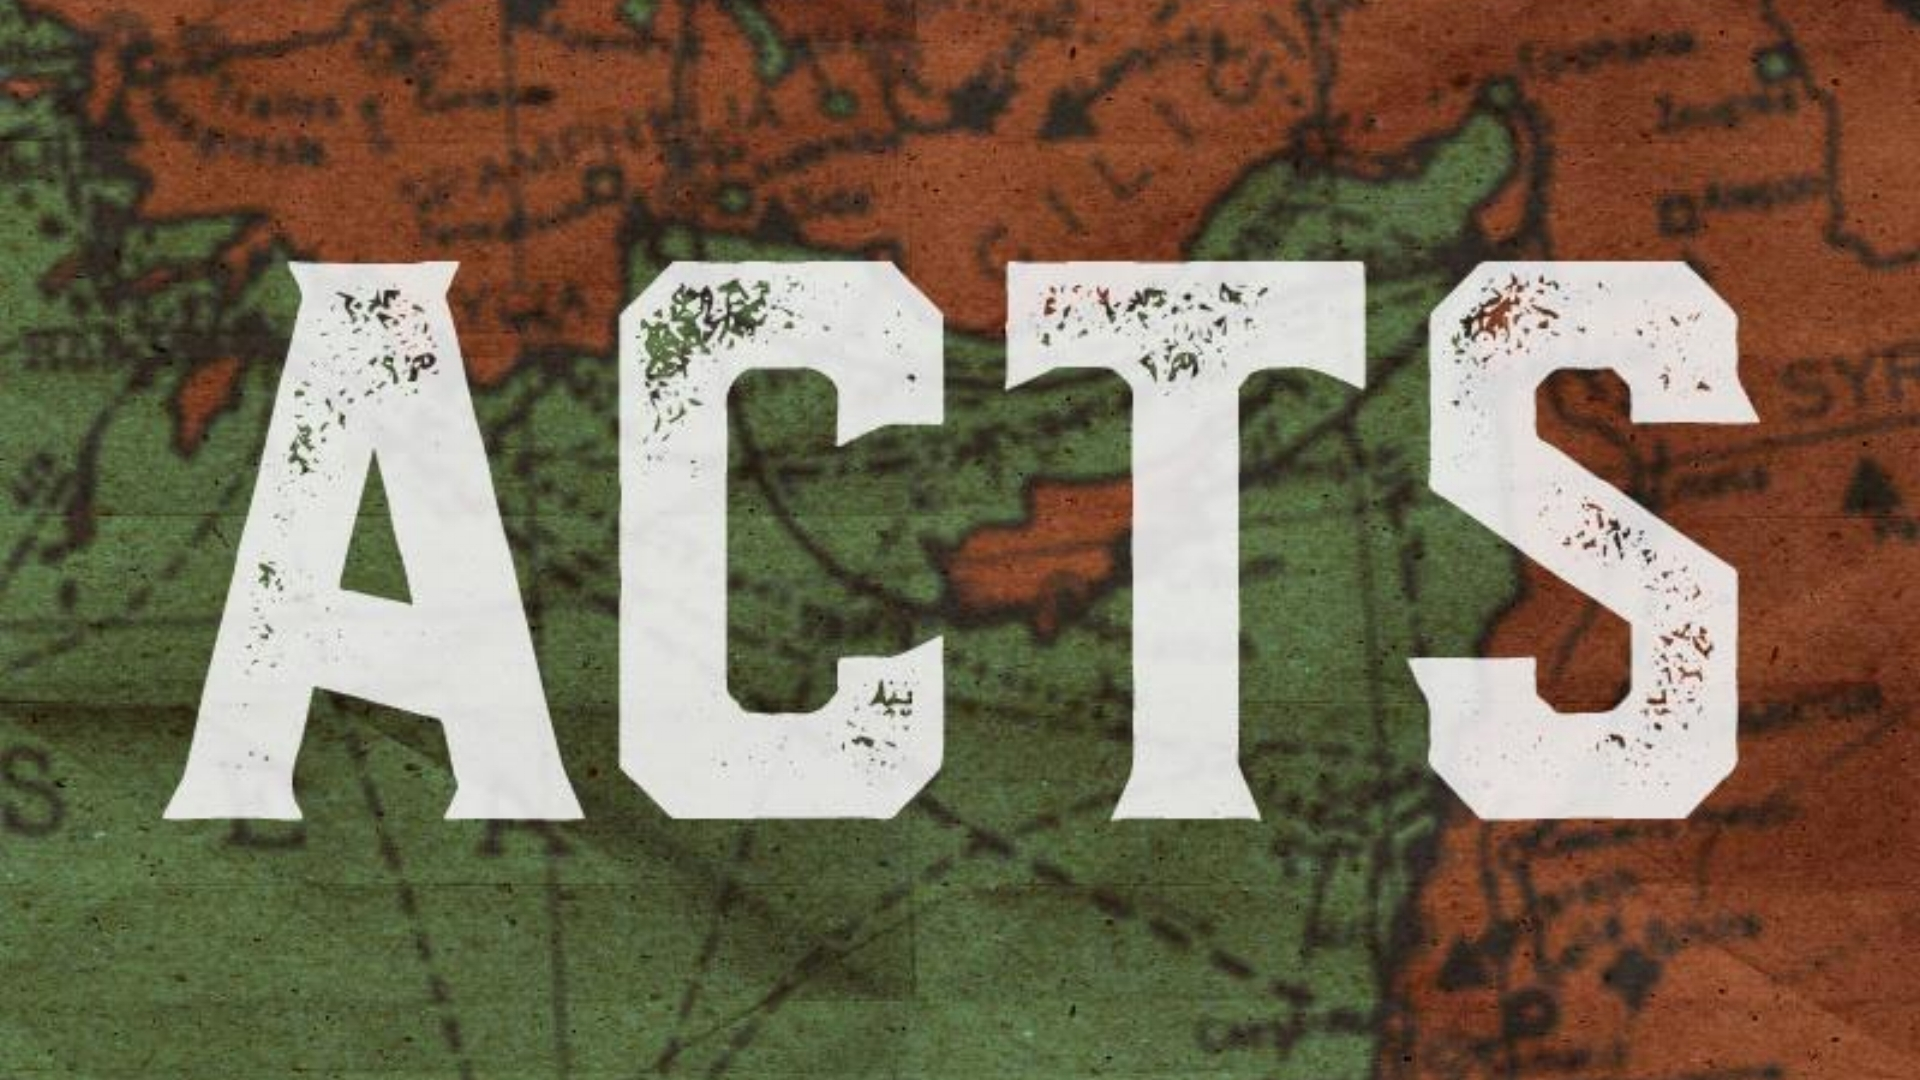 Acts (2015-2016)